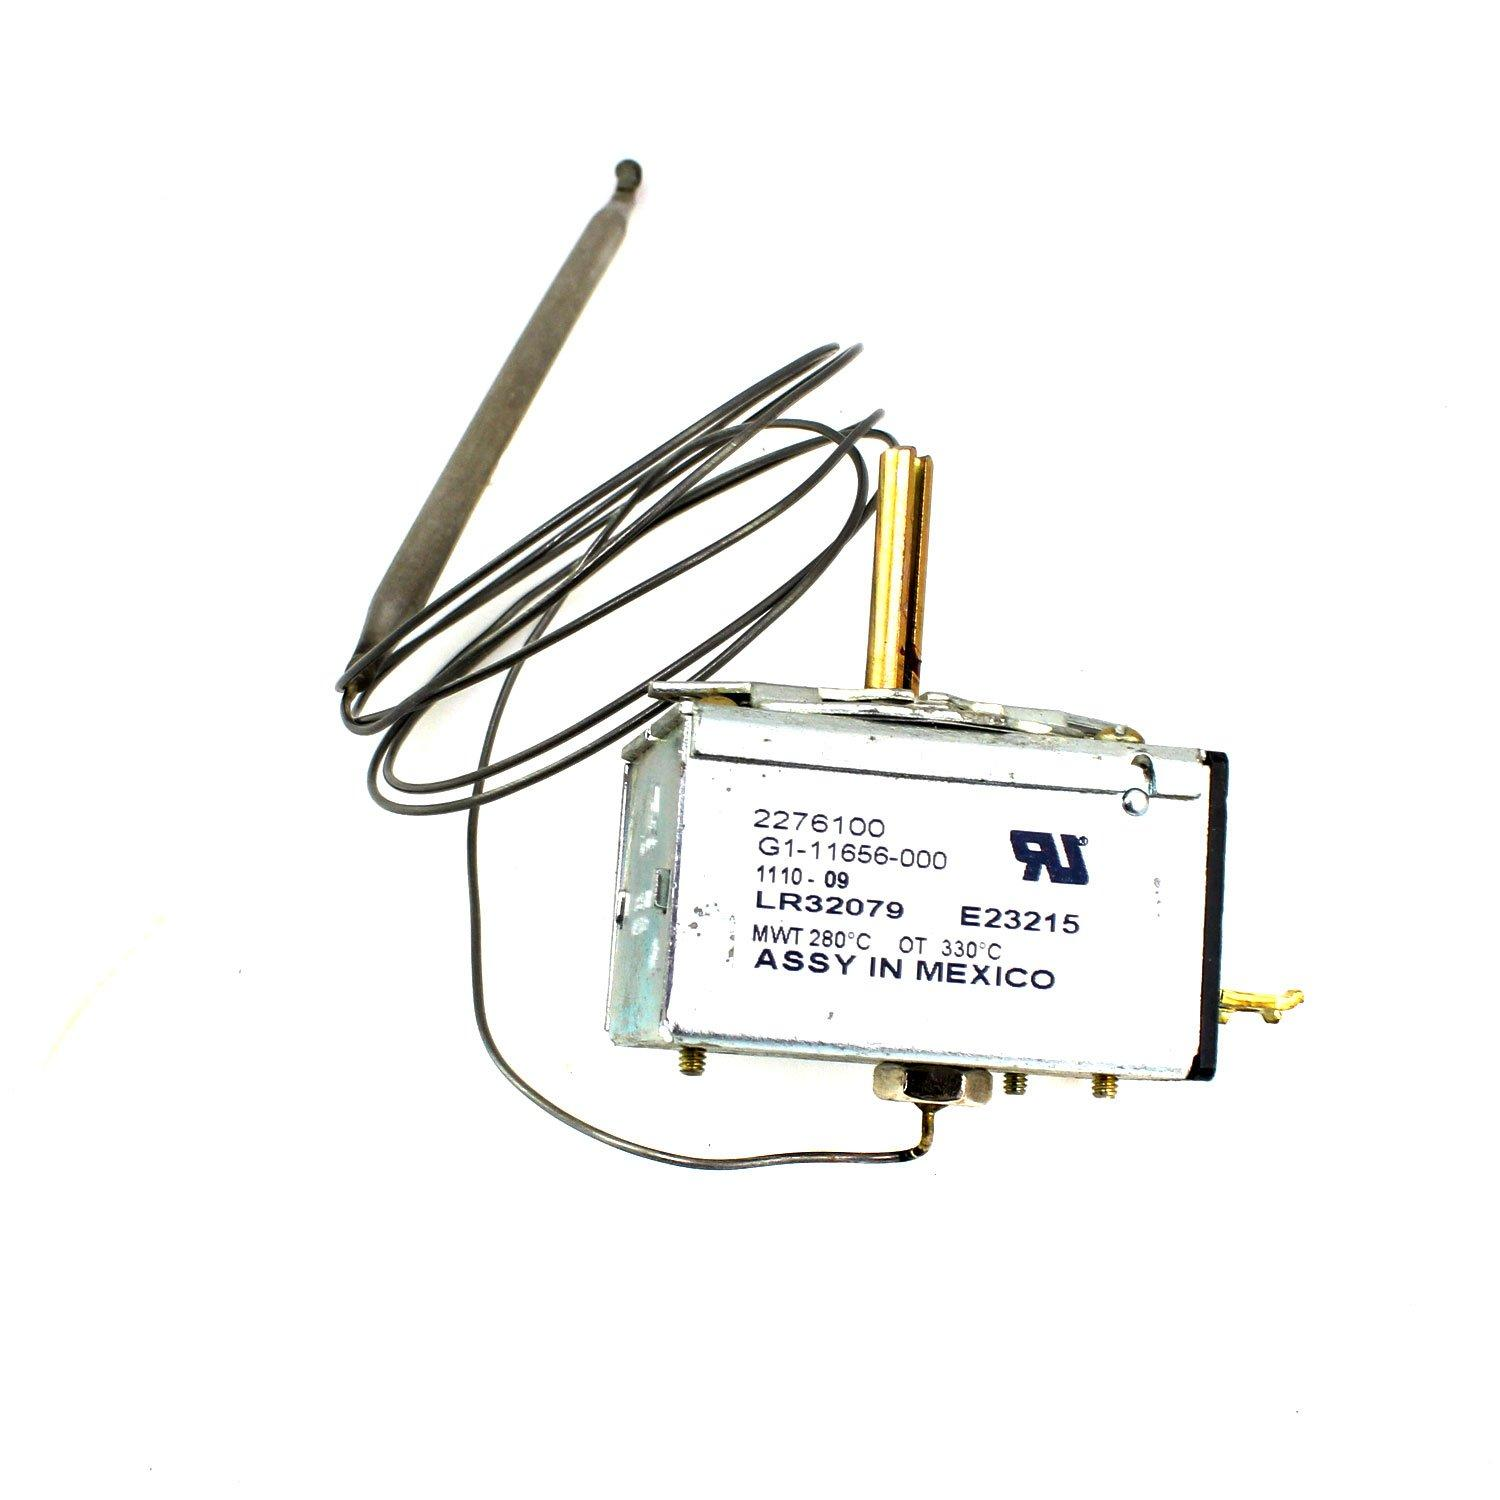 hight resolution of cleveland old thermostat set ranco g1 11656 part ke55069 3 2 pole thermostat wiring diagram ranco thermostat wiring diagram g1